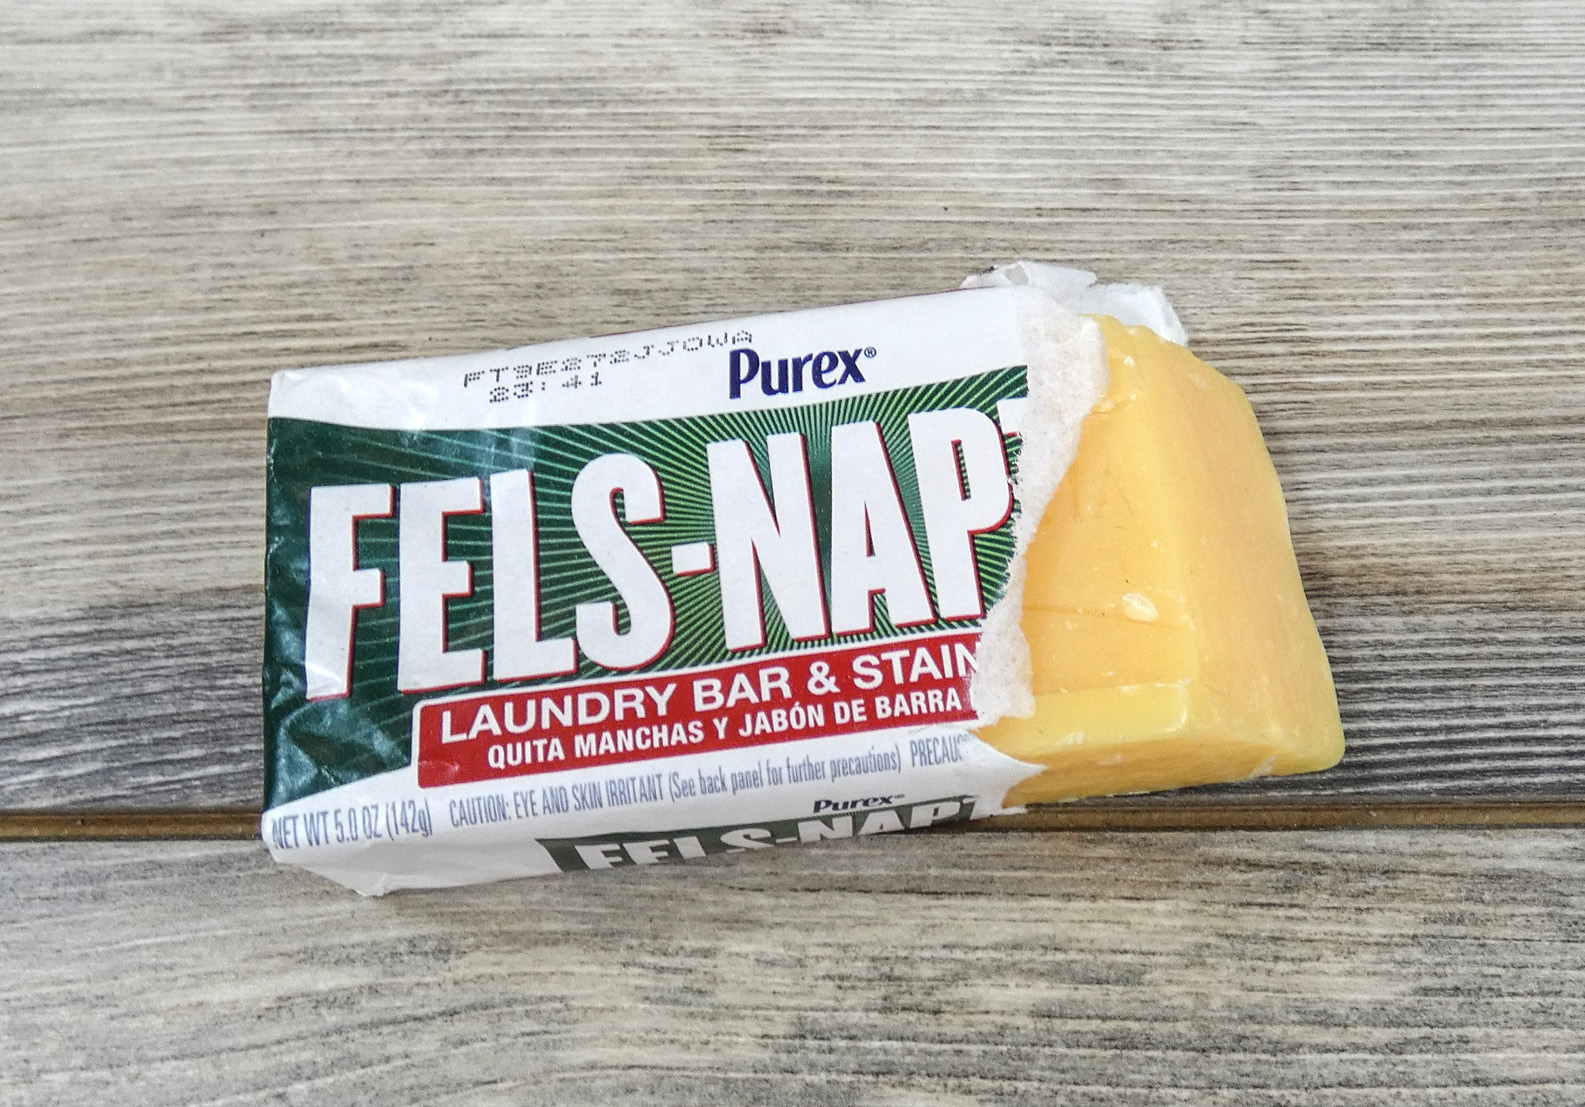 Fels naptha is a popular bar soap but too brittle for diy laundry detergent sheets.